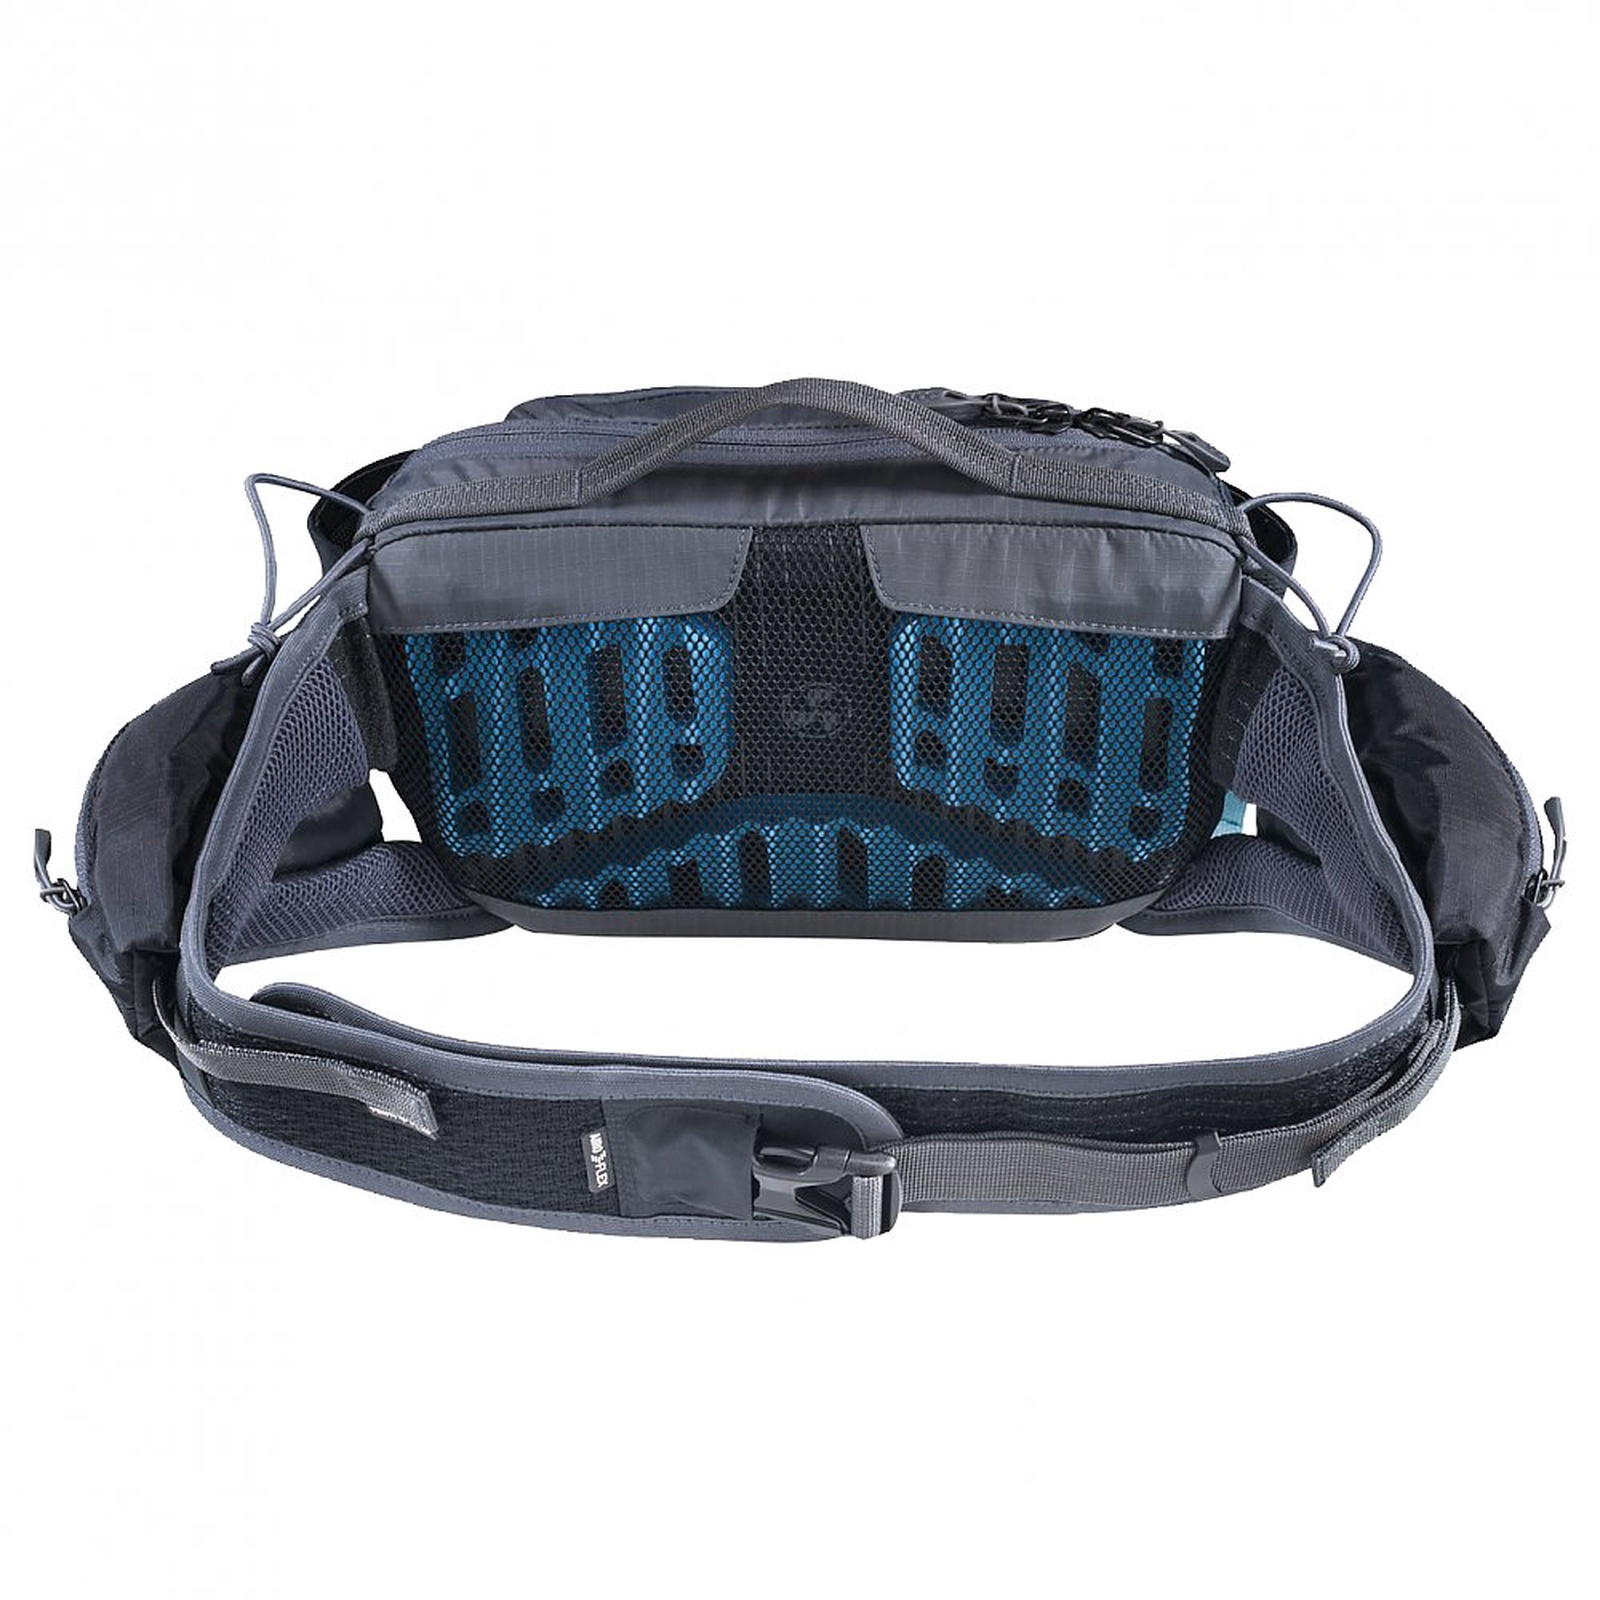 Hip Pack Pro 3l + 1,5l Bladder